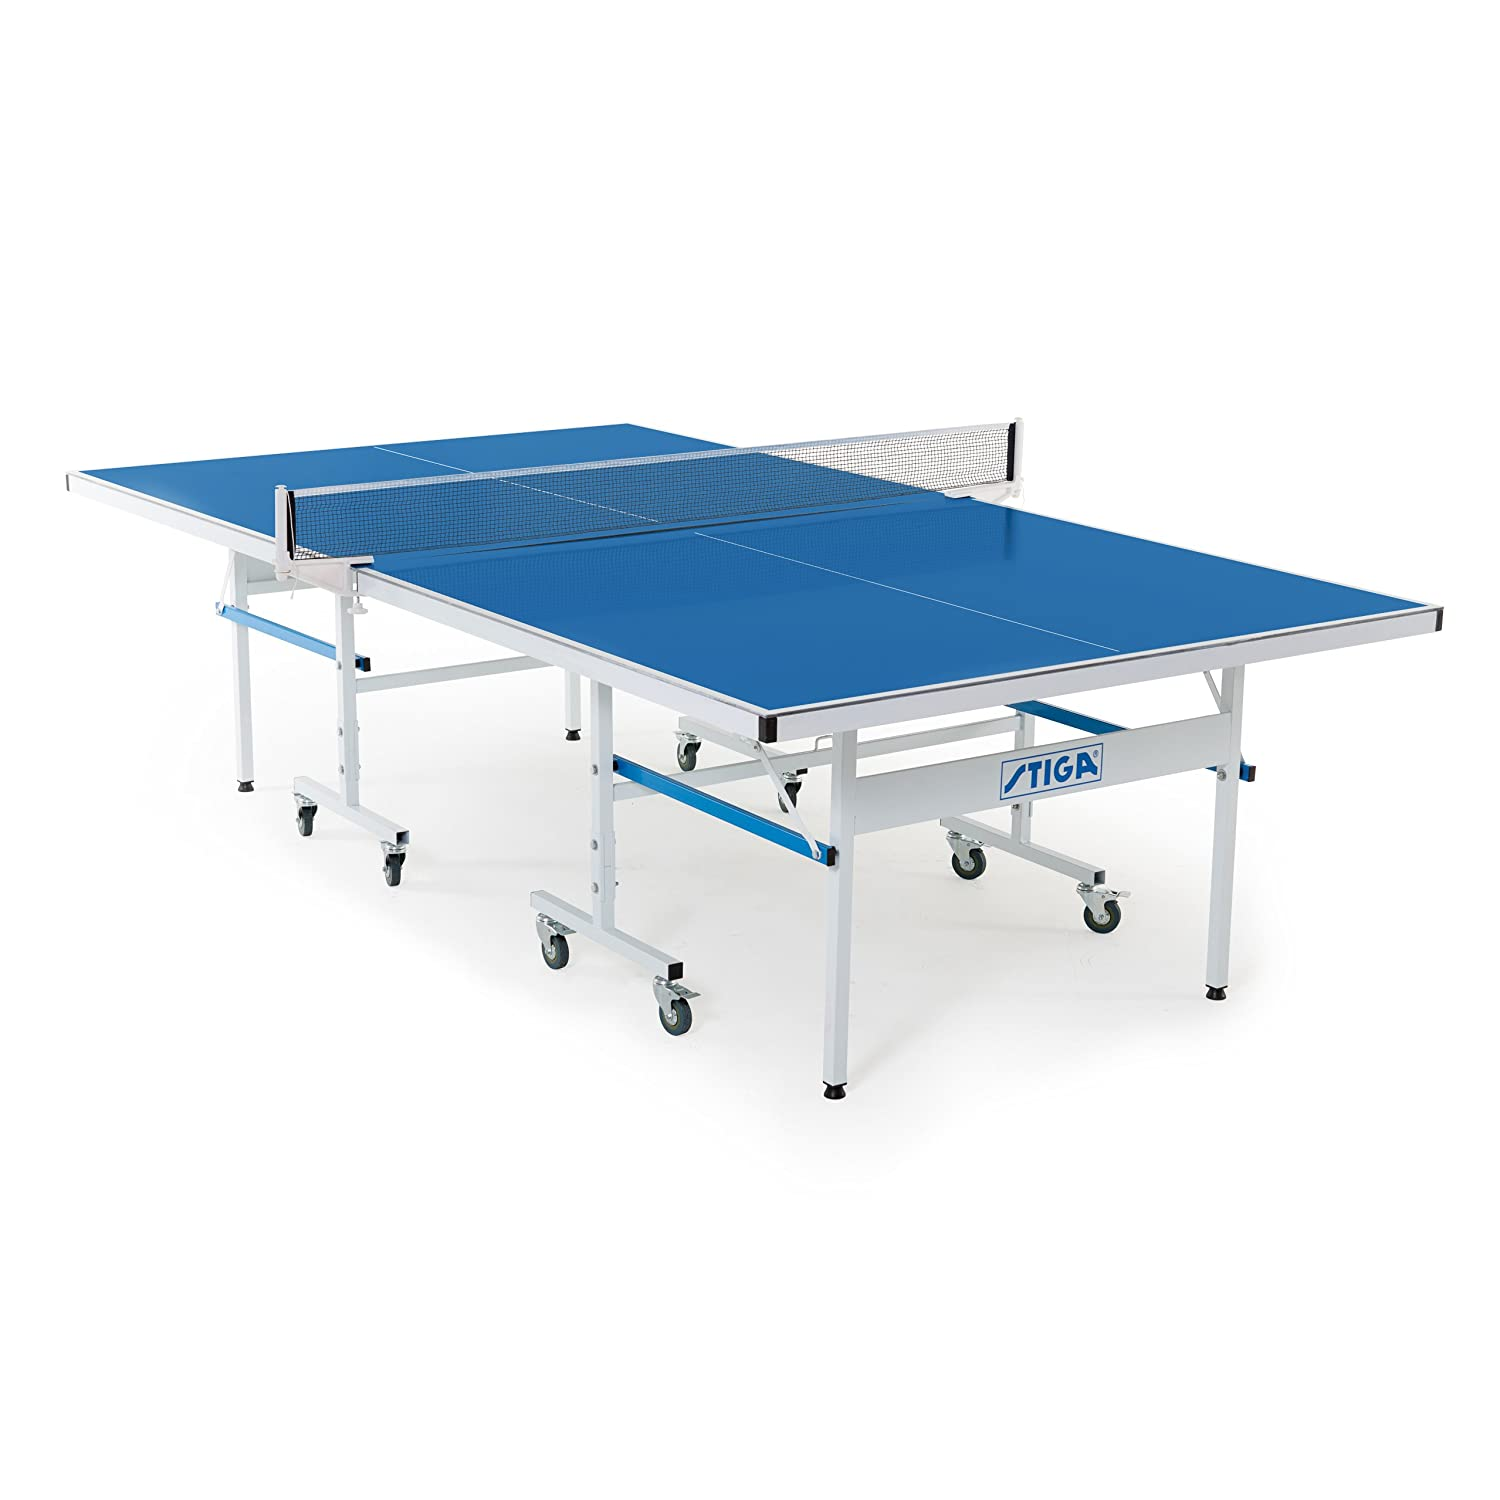 STIGA XTR (Best For Patio Ping-Pong Table)